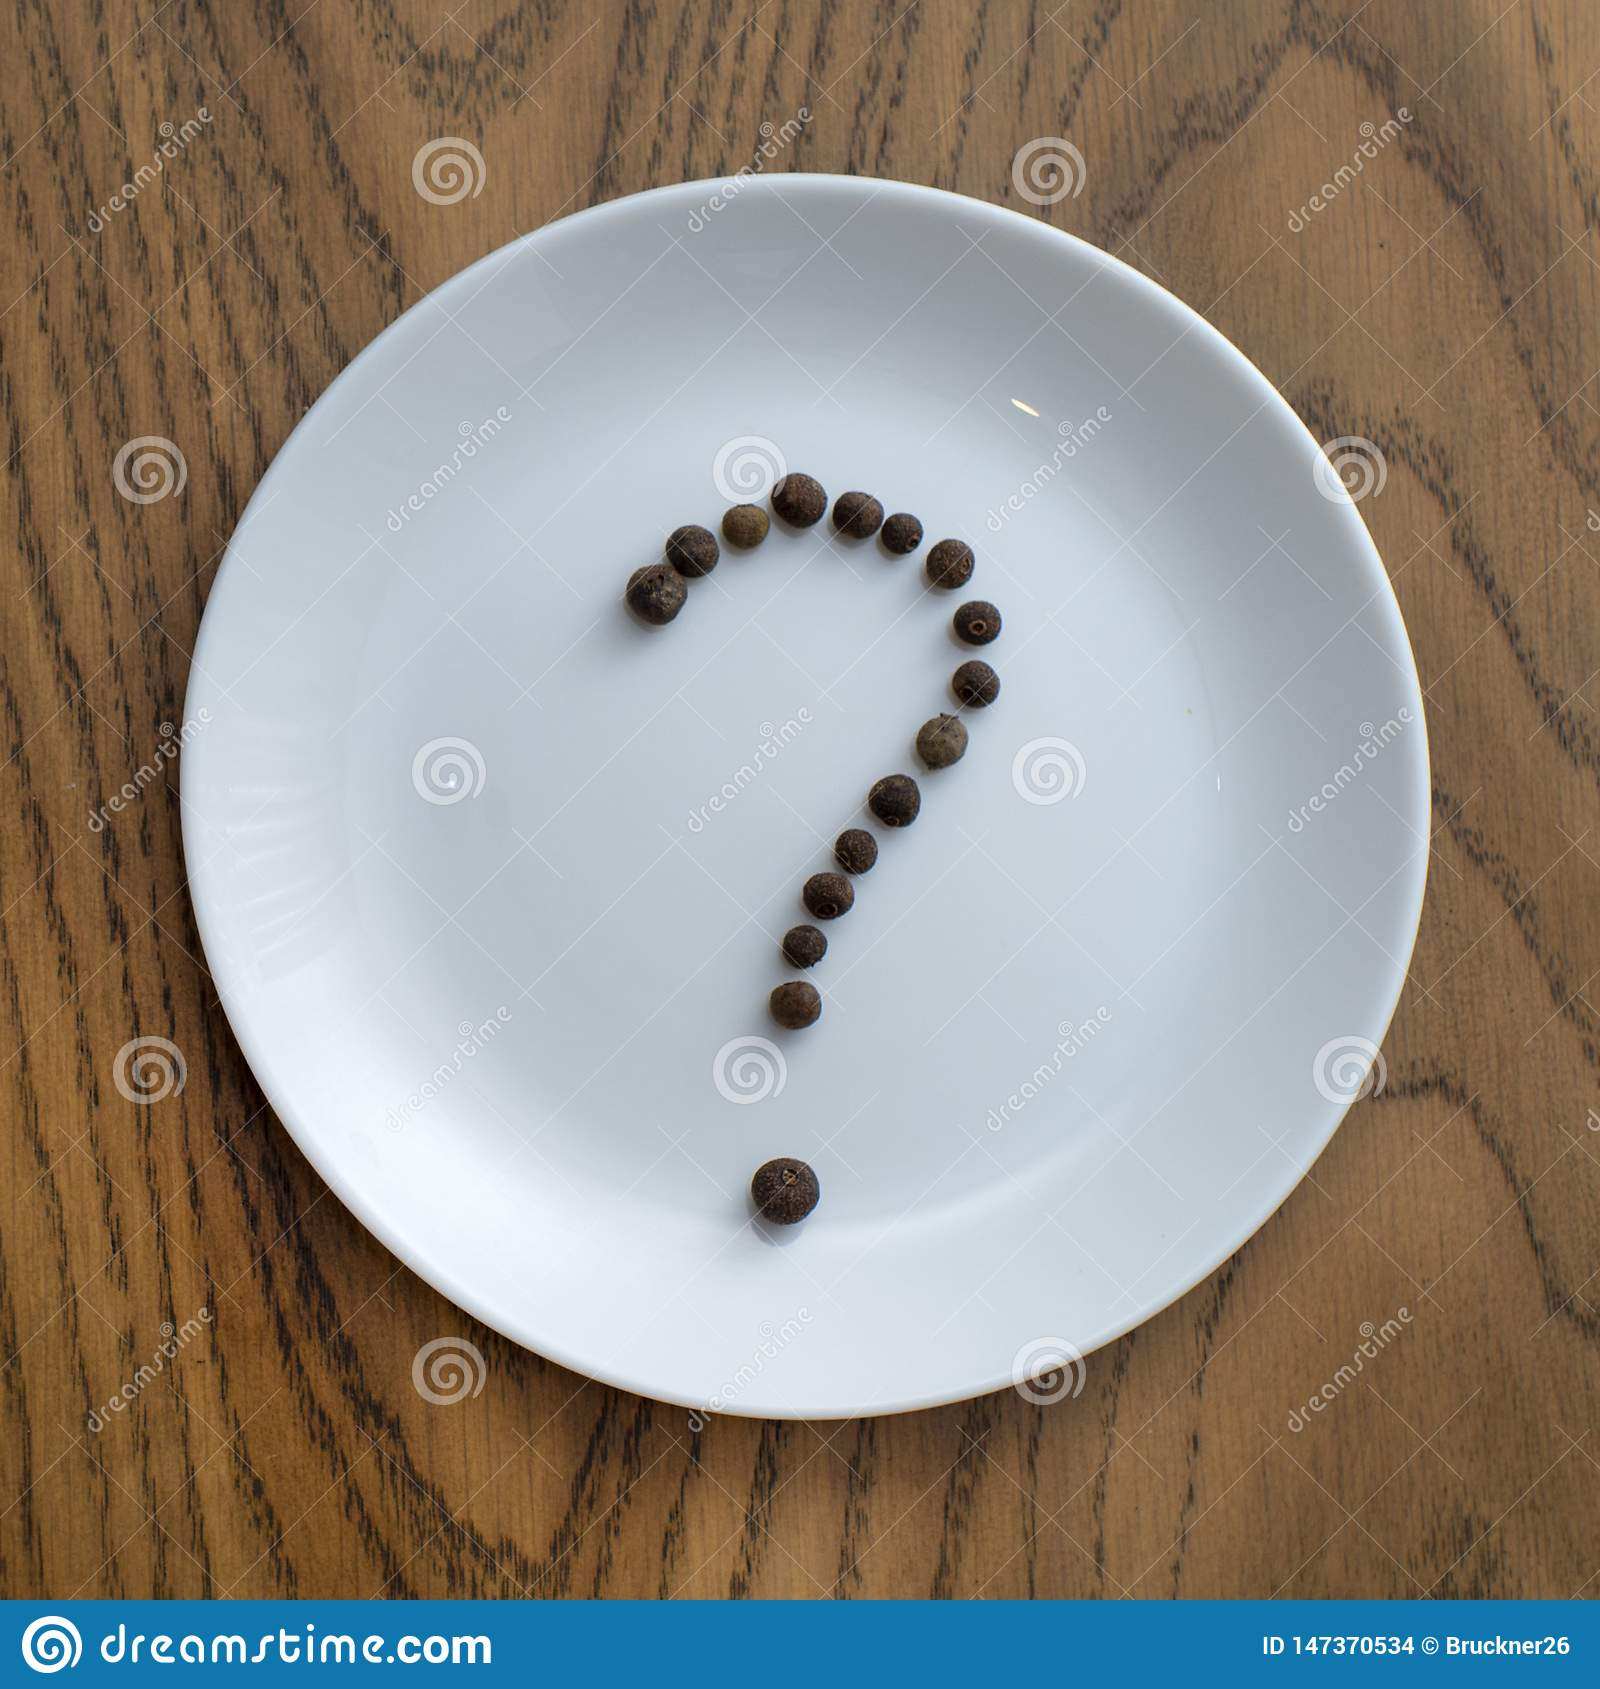 Question mark made of pepper